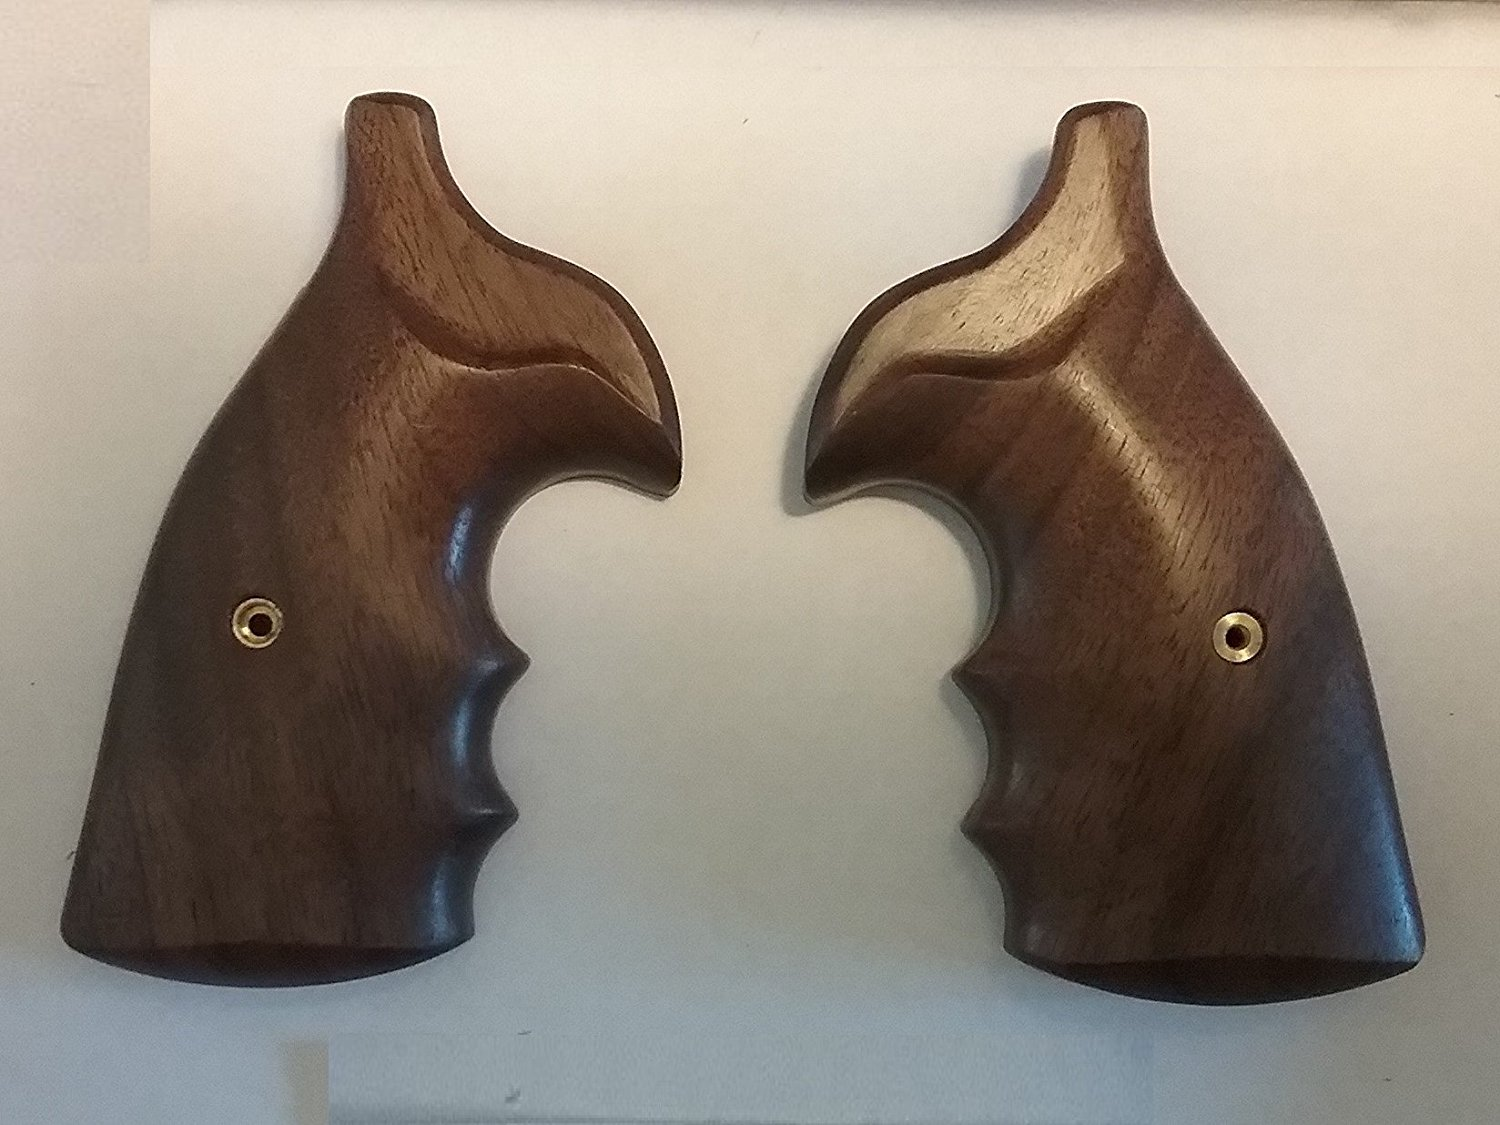 Cheap Finger Groove Grips, find Finger Groove Grips deals on line at